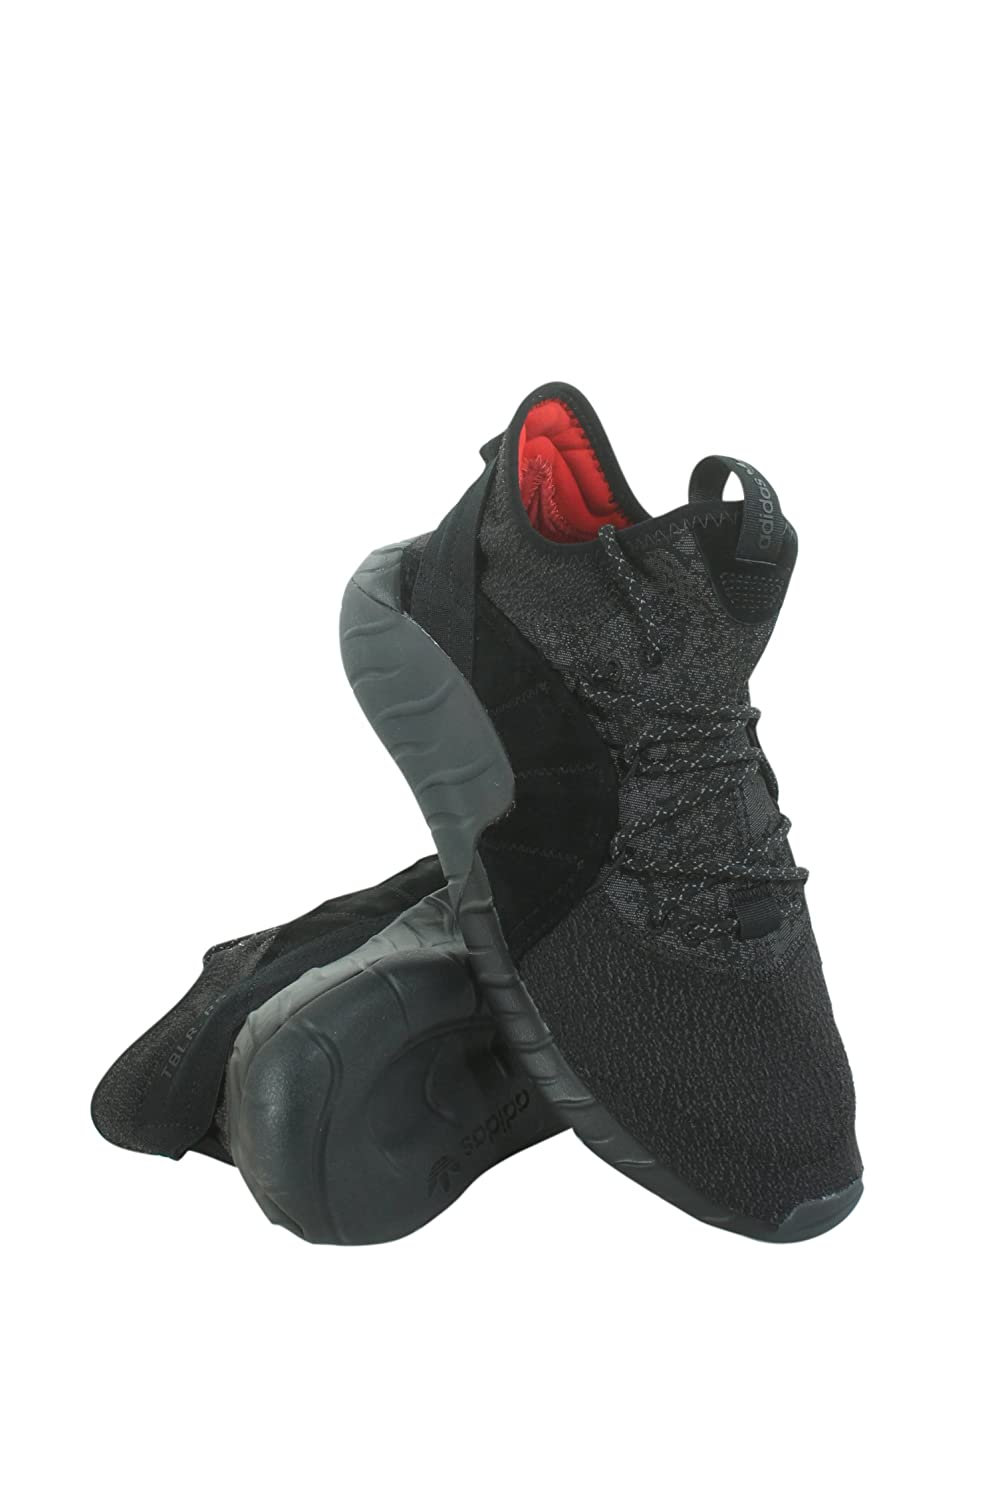 Cheap Adidas tubular invader sale,Cheap Adidas shoes sale online,Cheap Adidas zx 8000